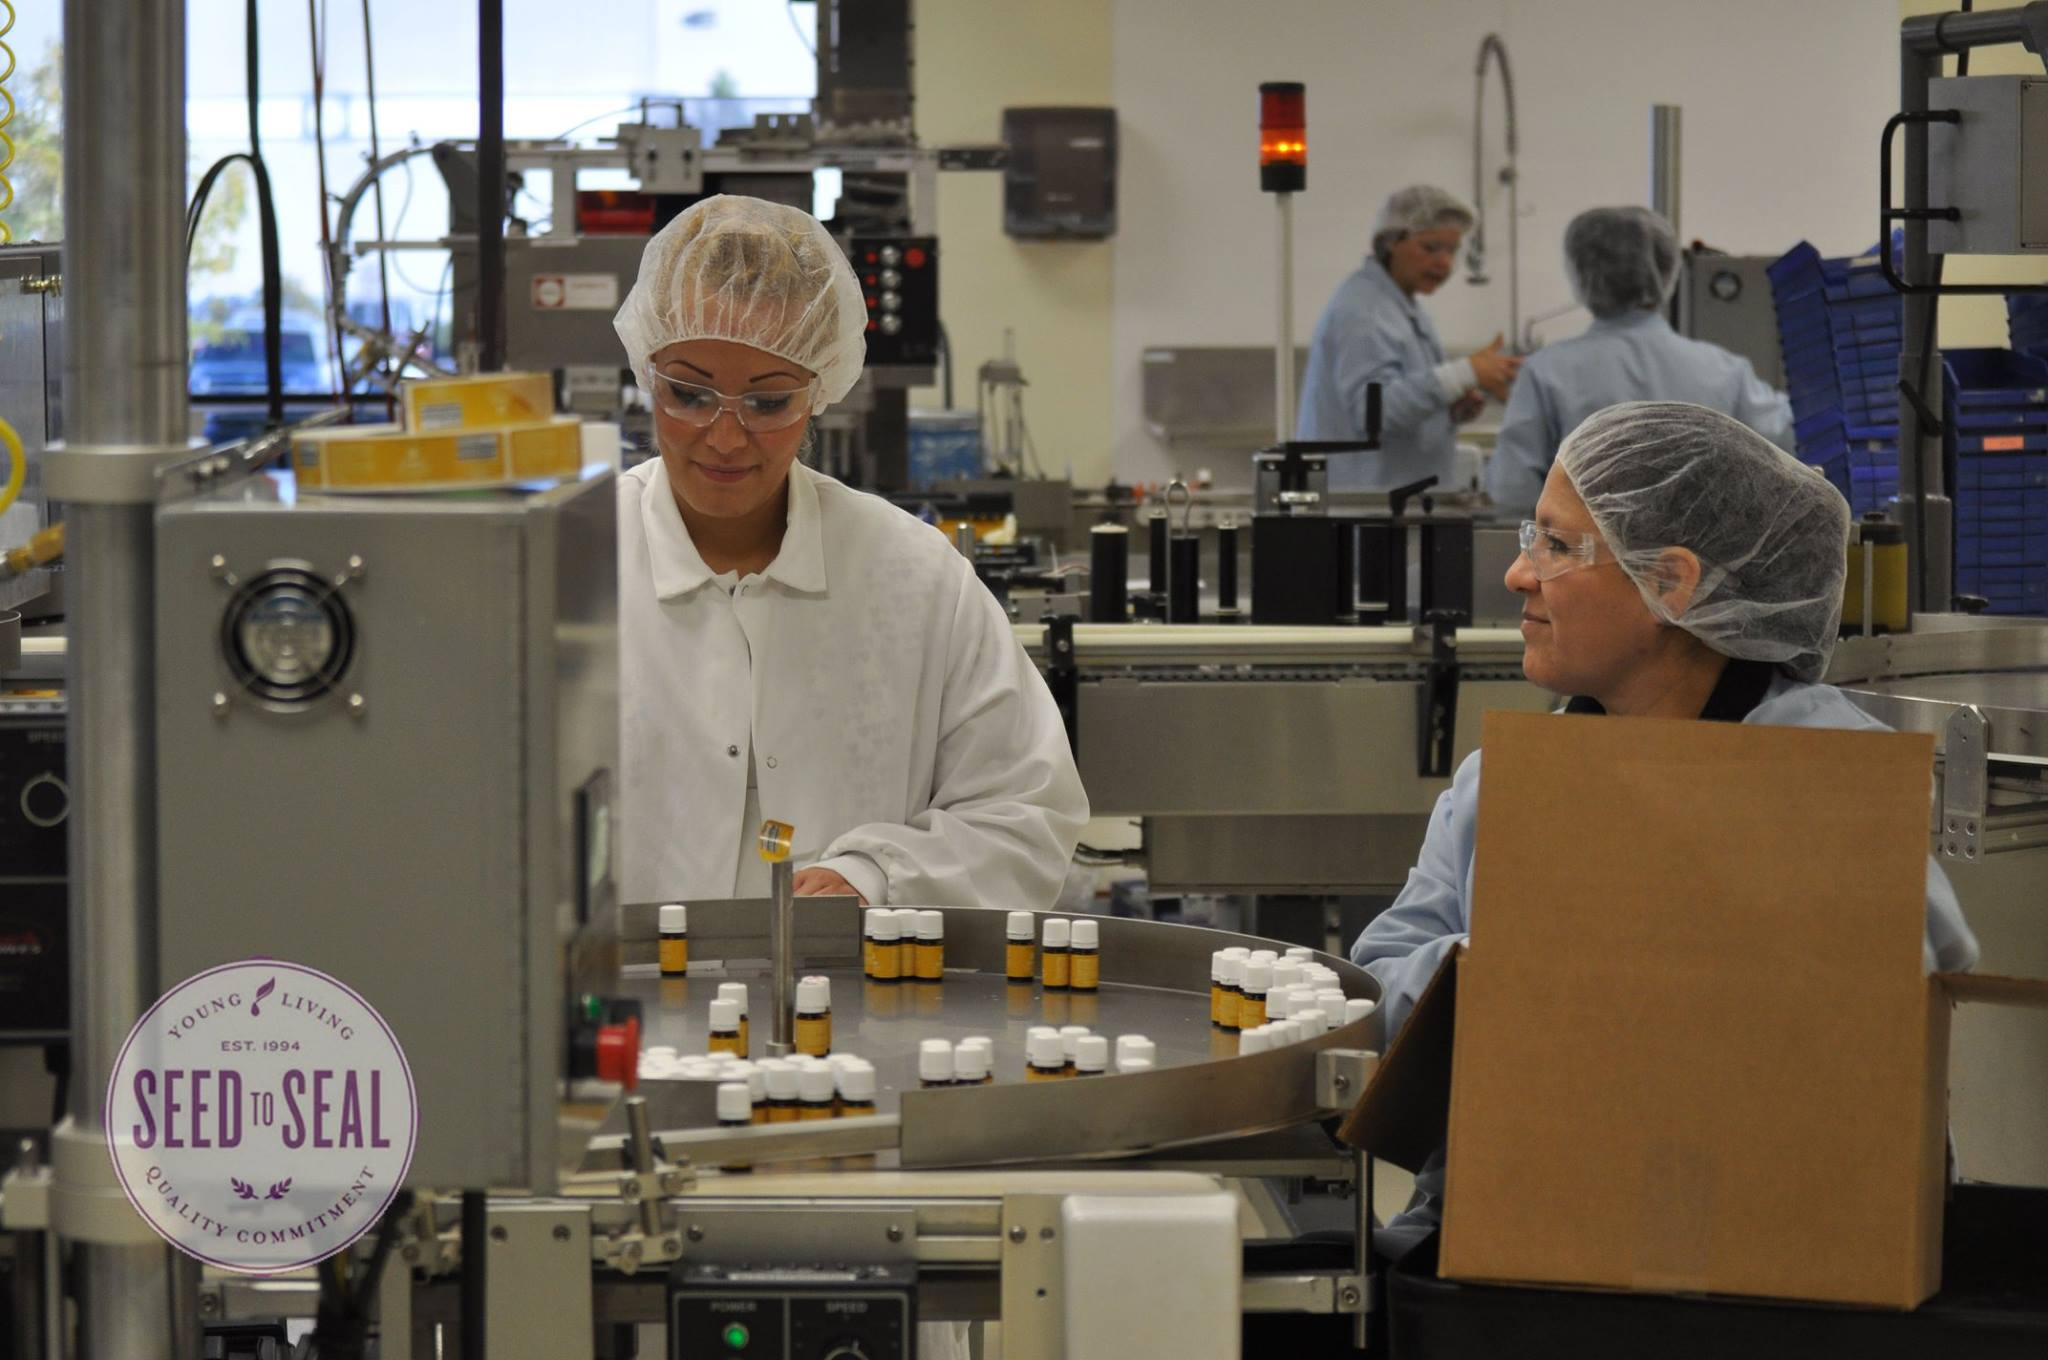 Labeling Young Living bottles